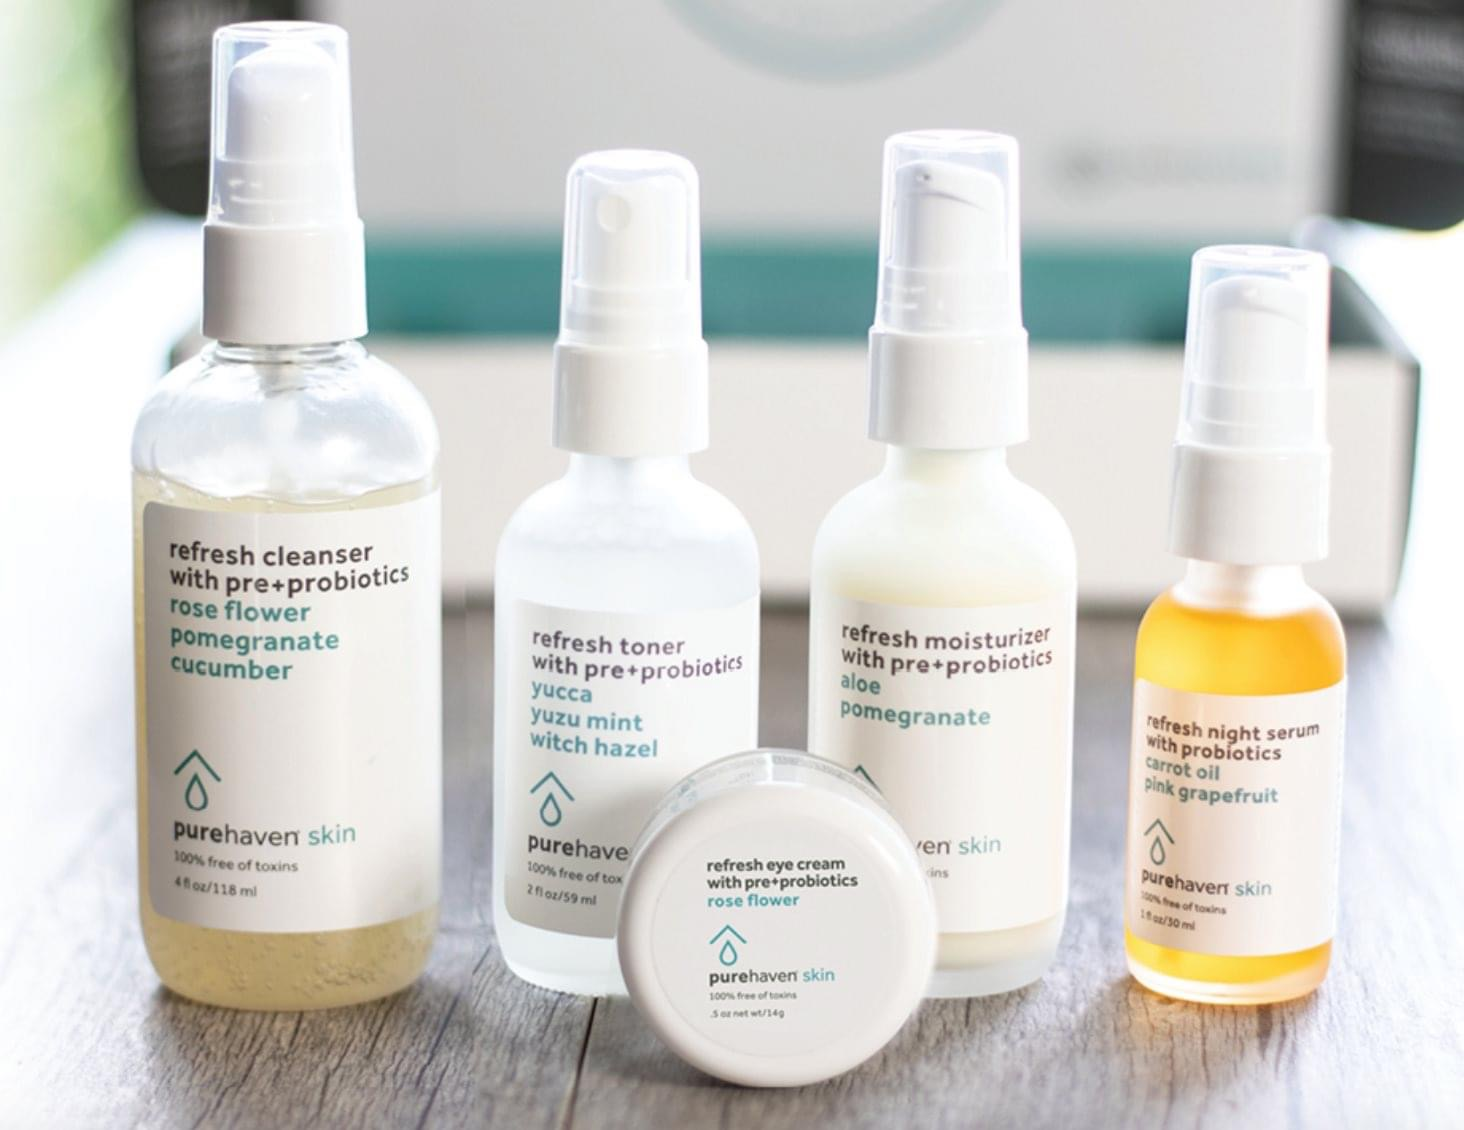 pure haven skincare